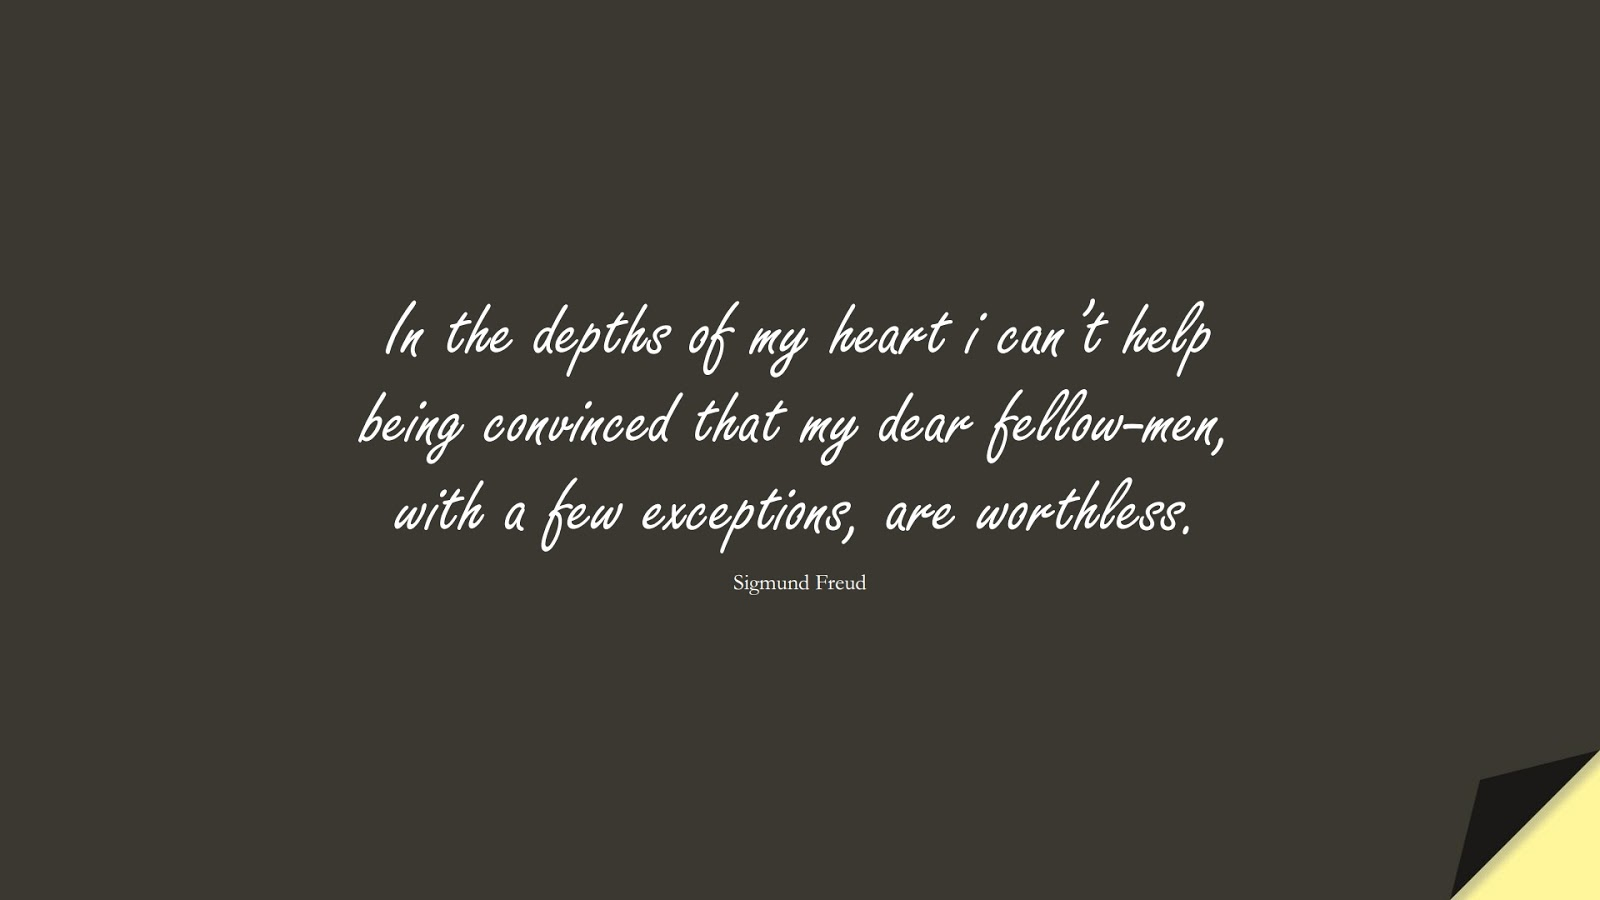 In the depths of my heart i can't help being convinced that my dear fellow-men, with a few exceptions, are worthless. (Sigmund Freud);  #HumanityQuotes